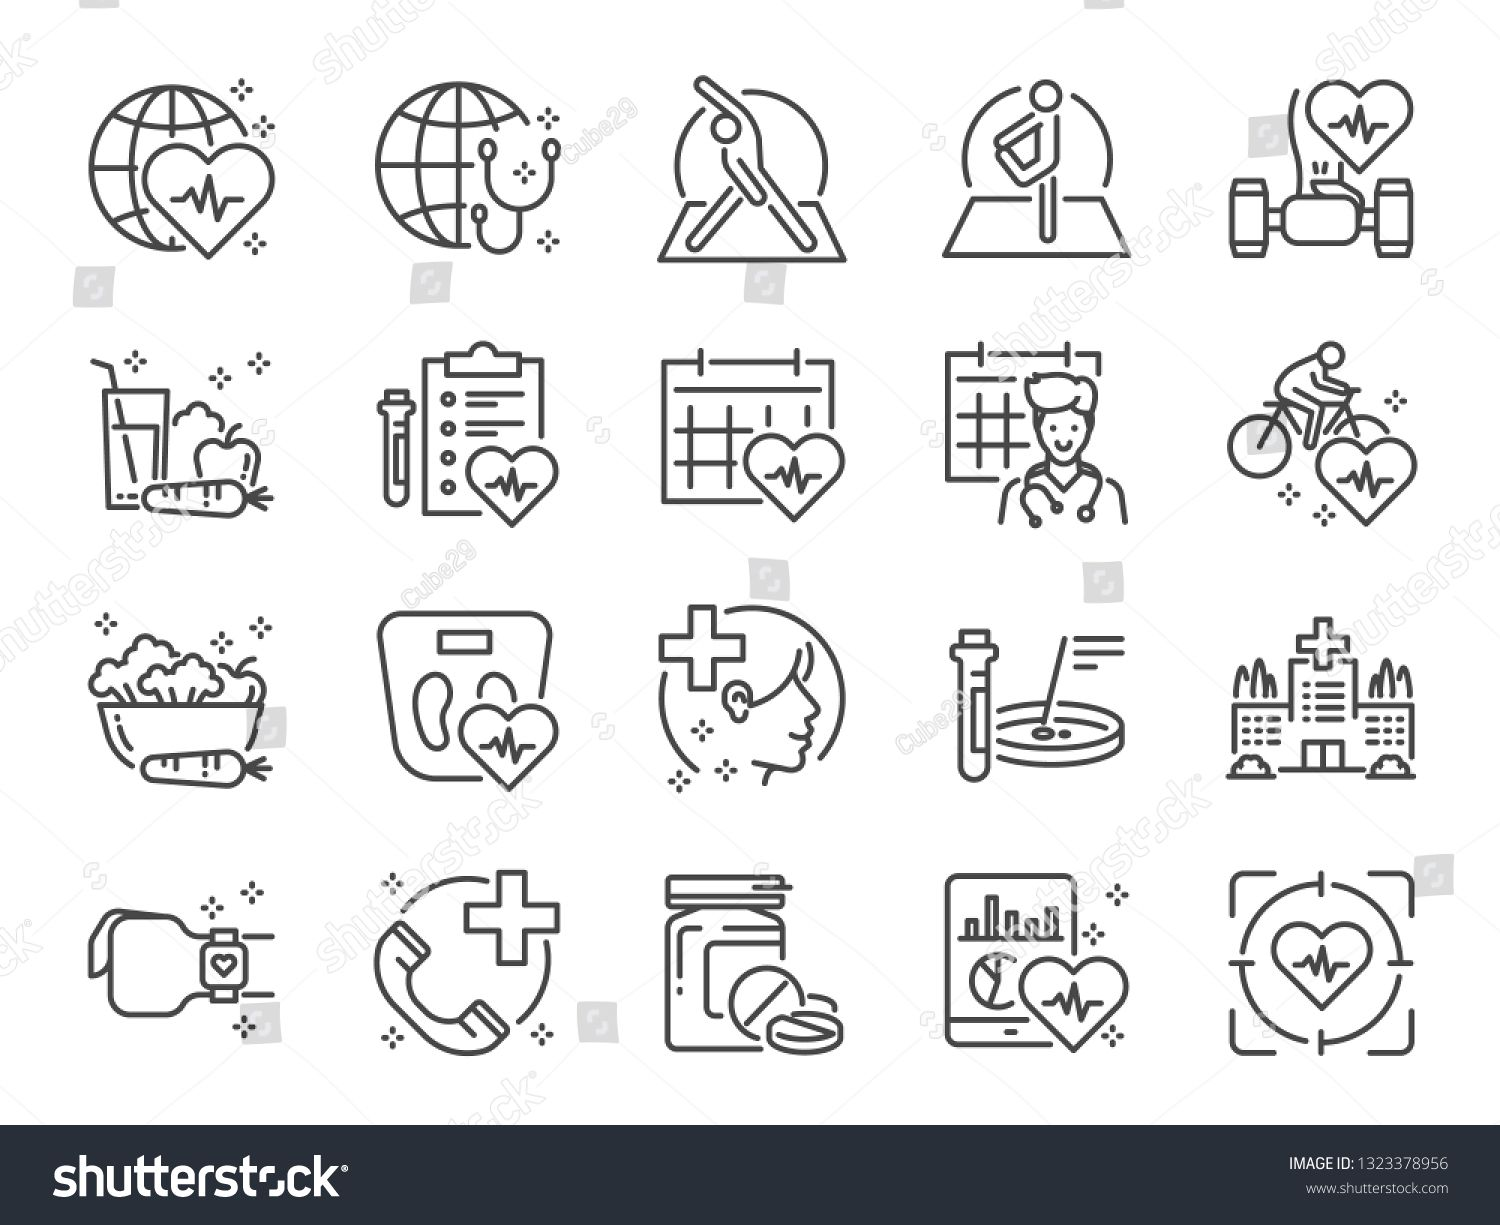 Global Healthcare Line Icon Set Included Icons As Exercise